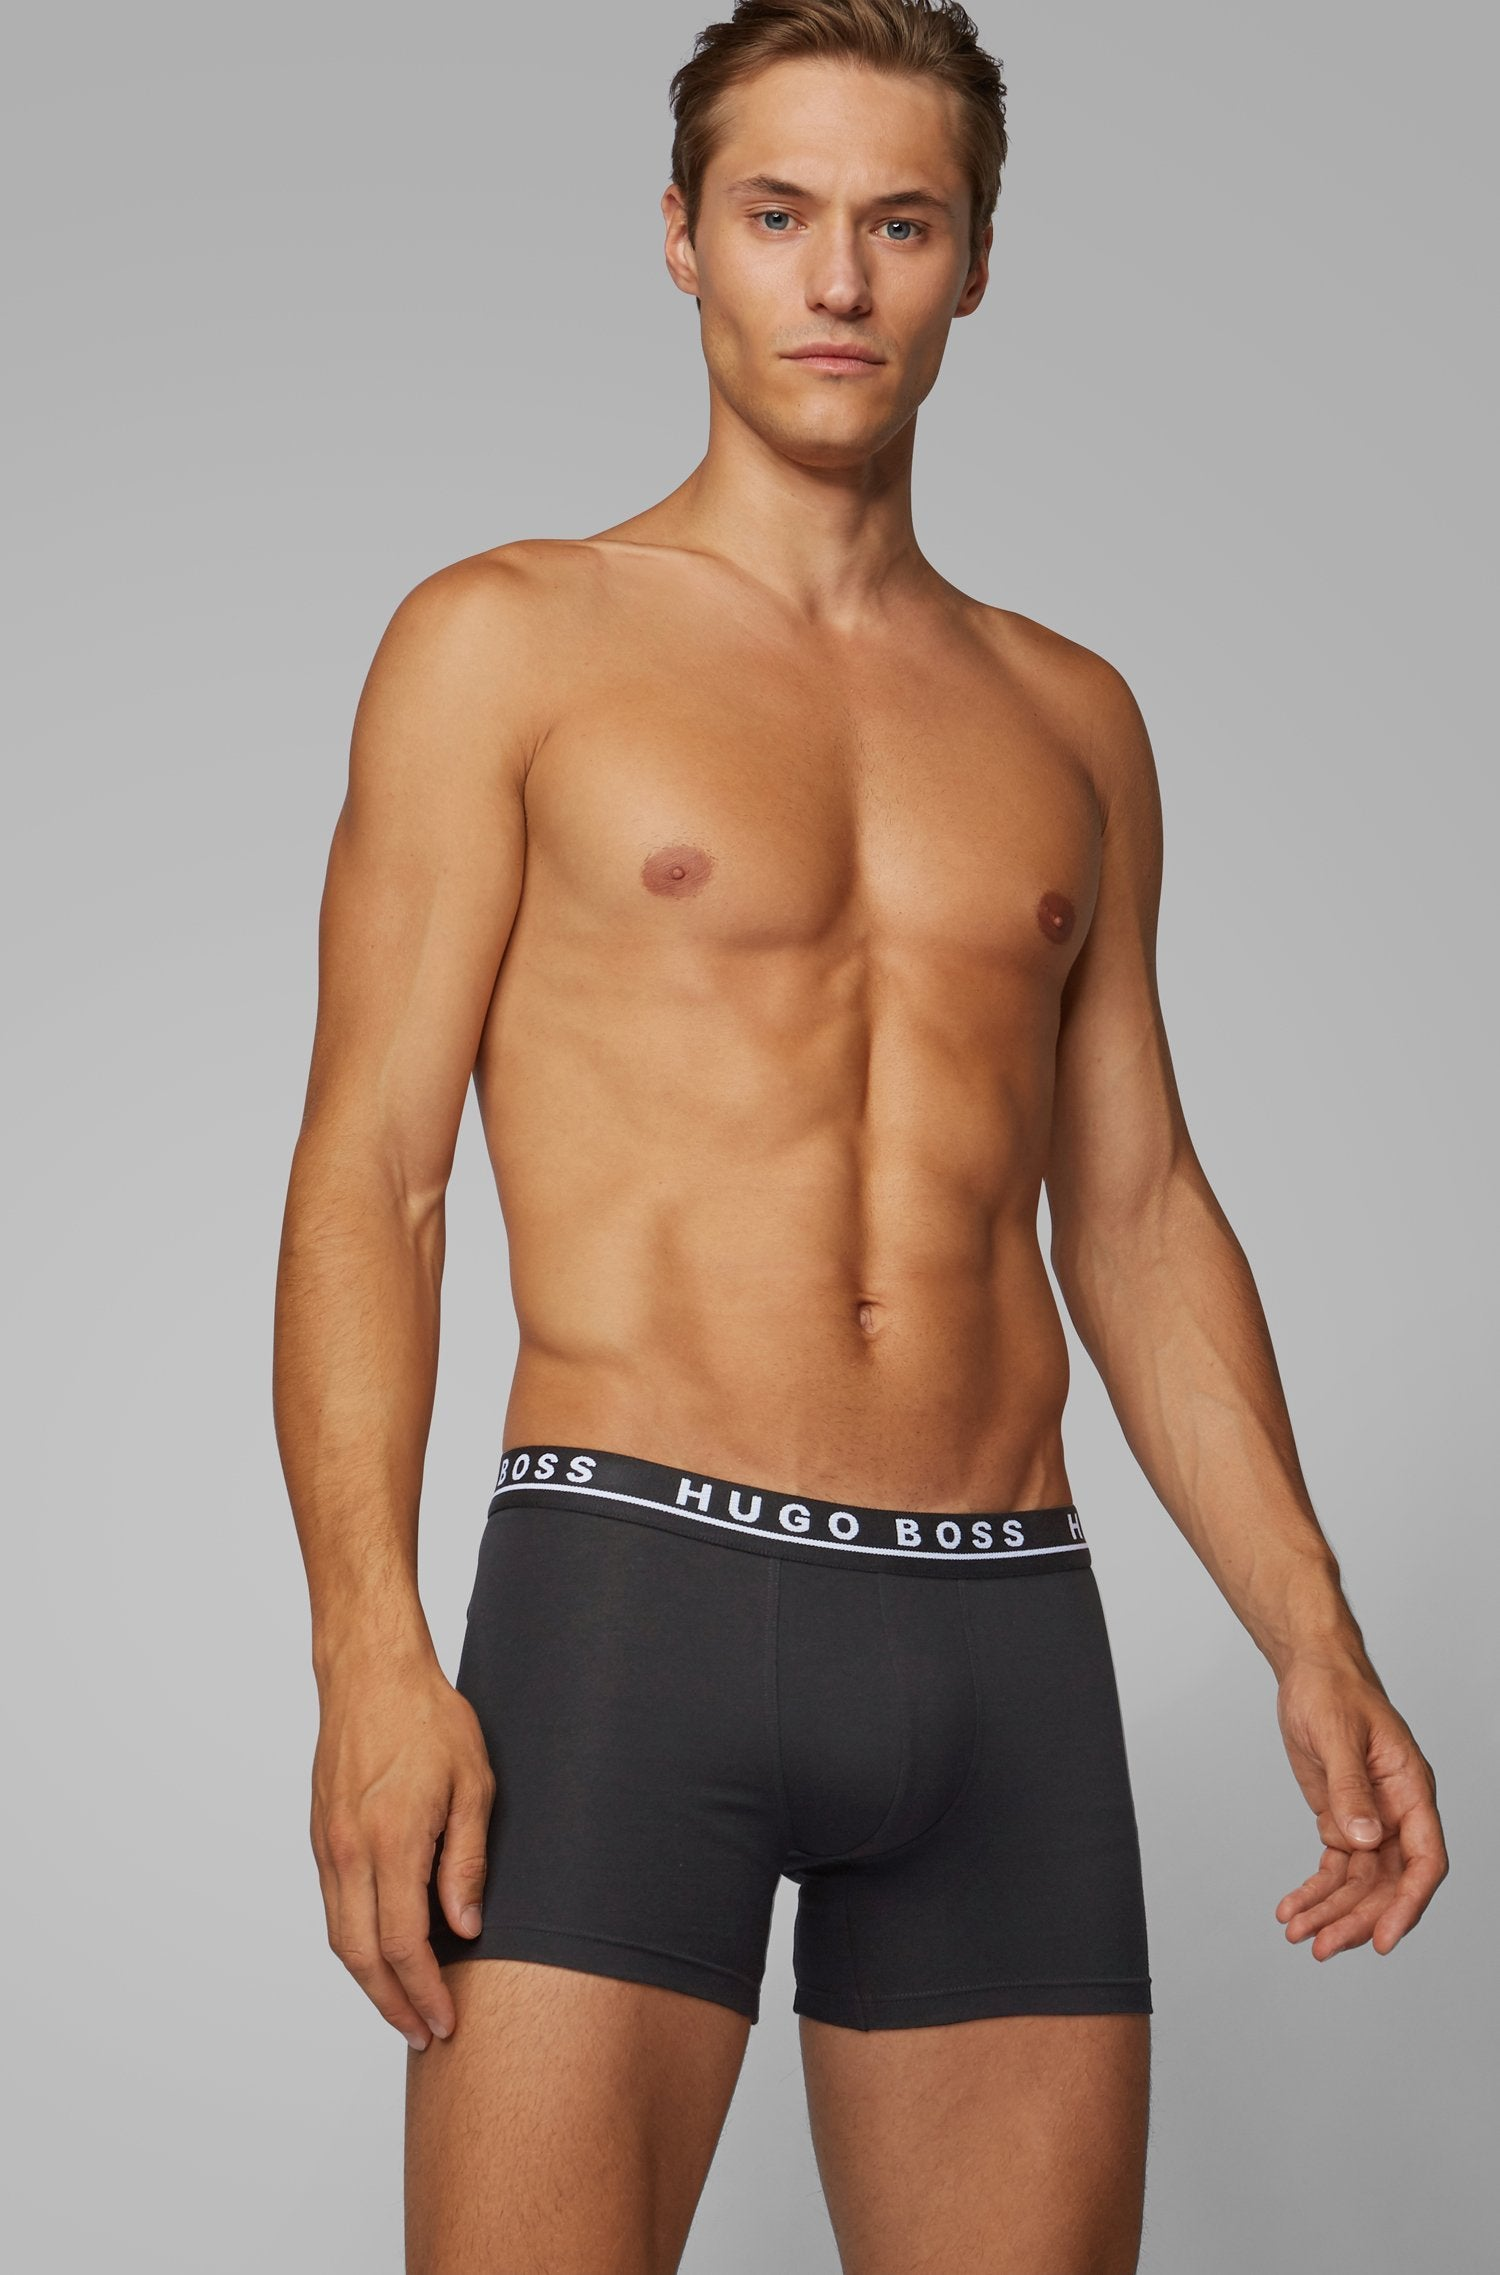 Hugo Boss Boxer Brief 3P CO/EL Mens Underwear 50325404-001